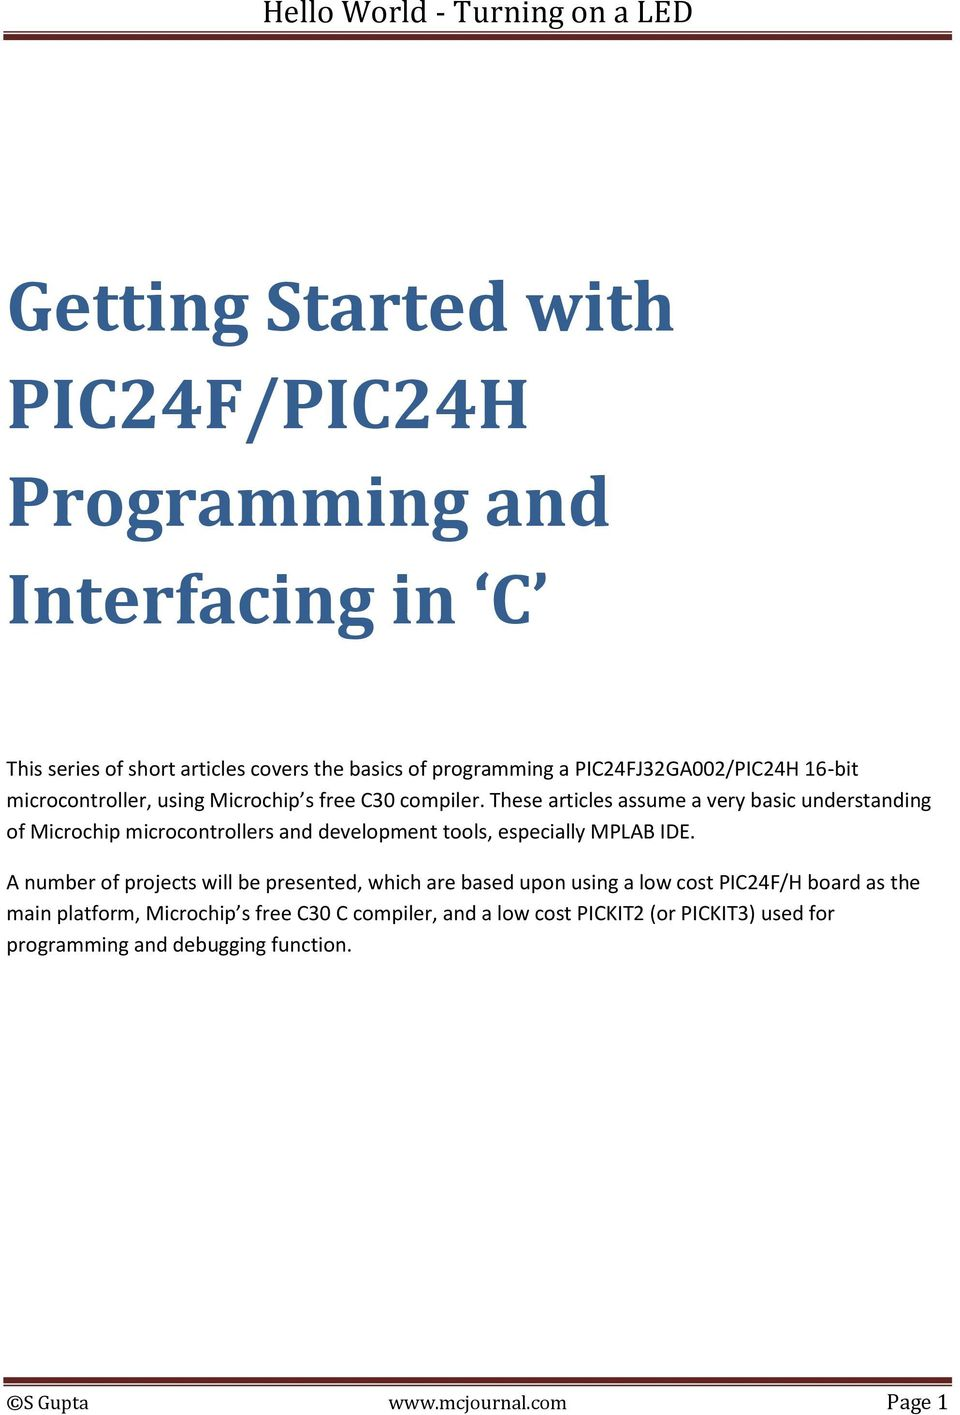 Getting Started with PIC24F/PIC24H Programming and Interfacing in C